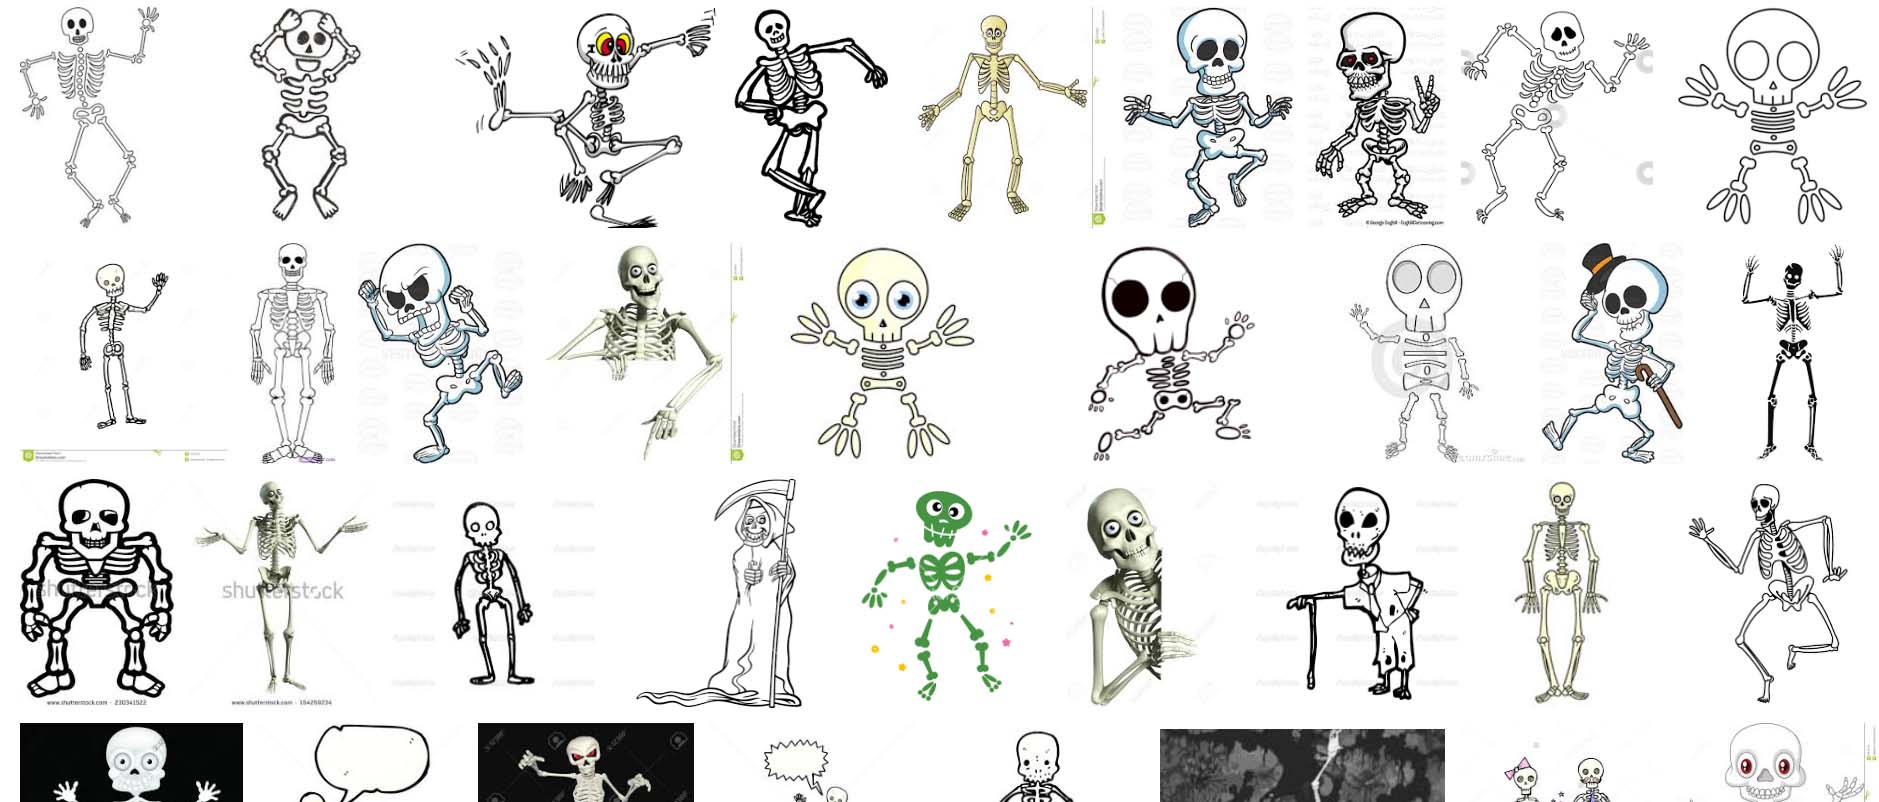 Skeleton Character Inspiration